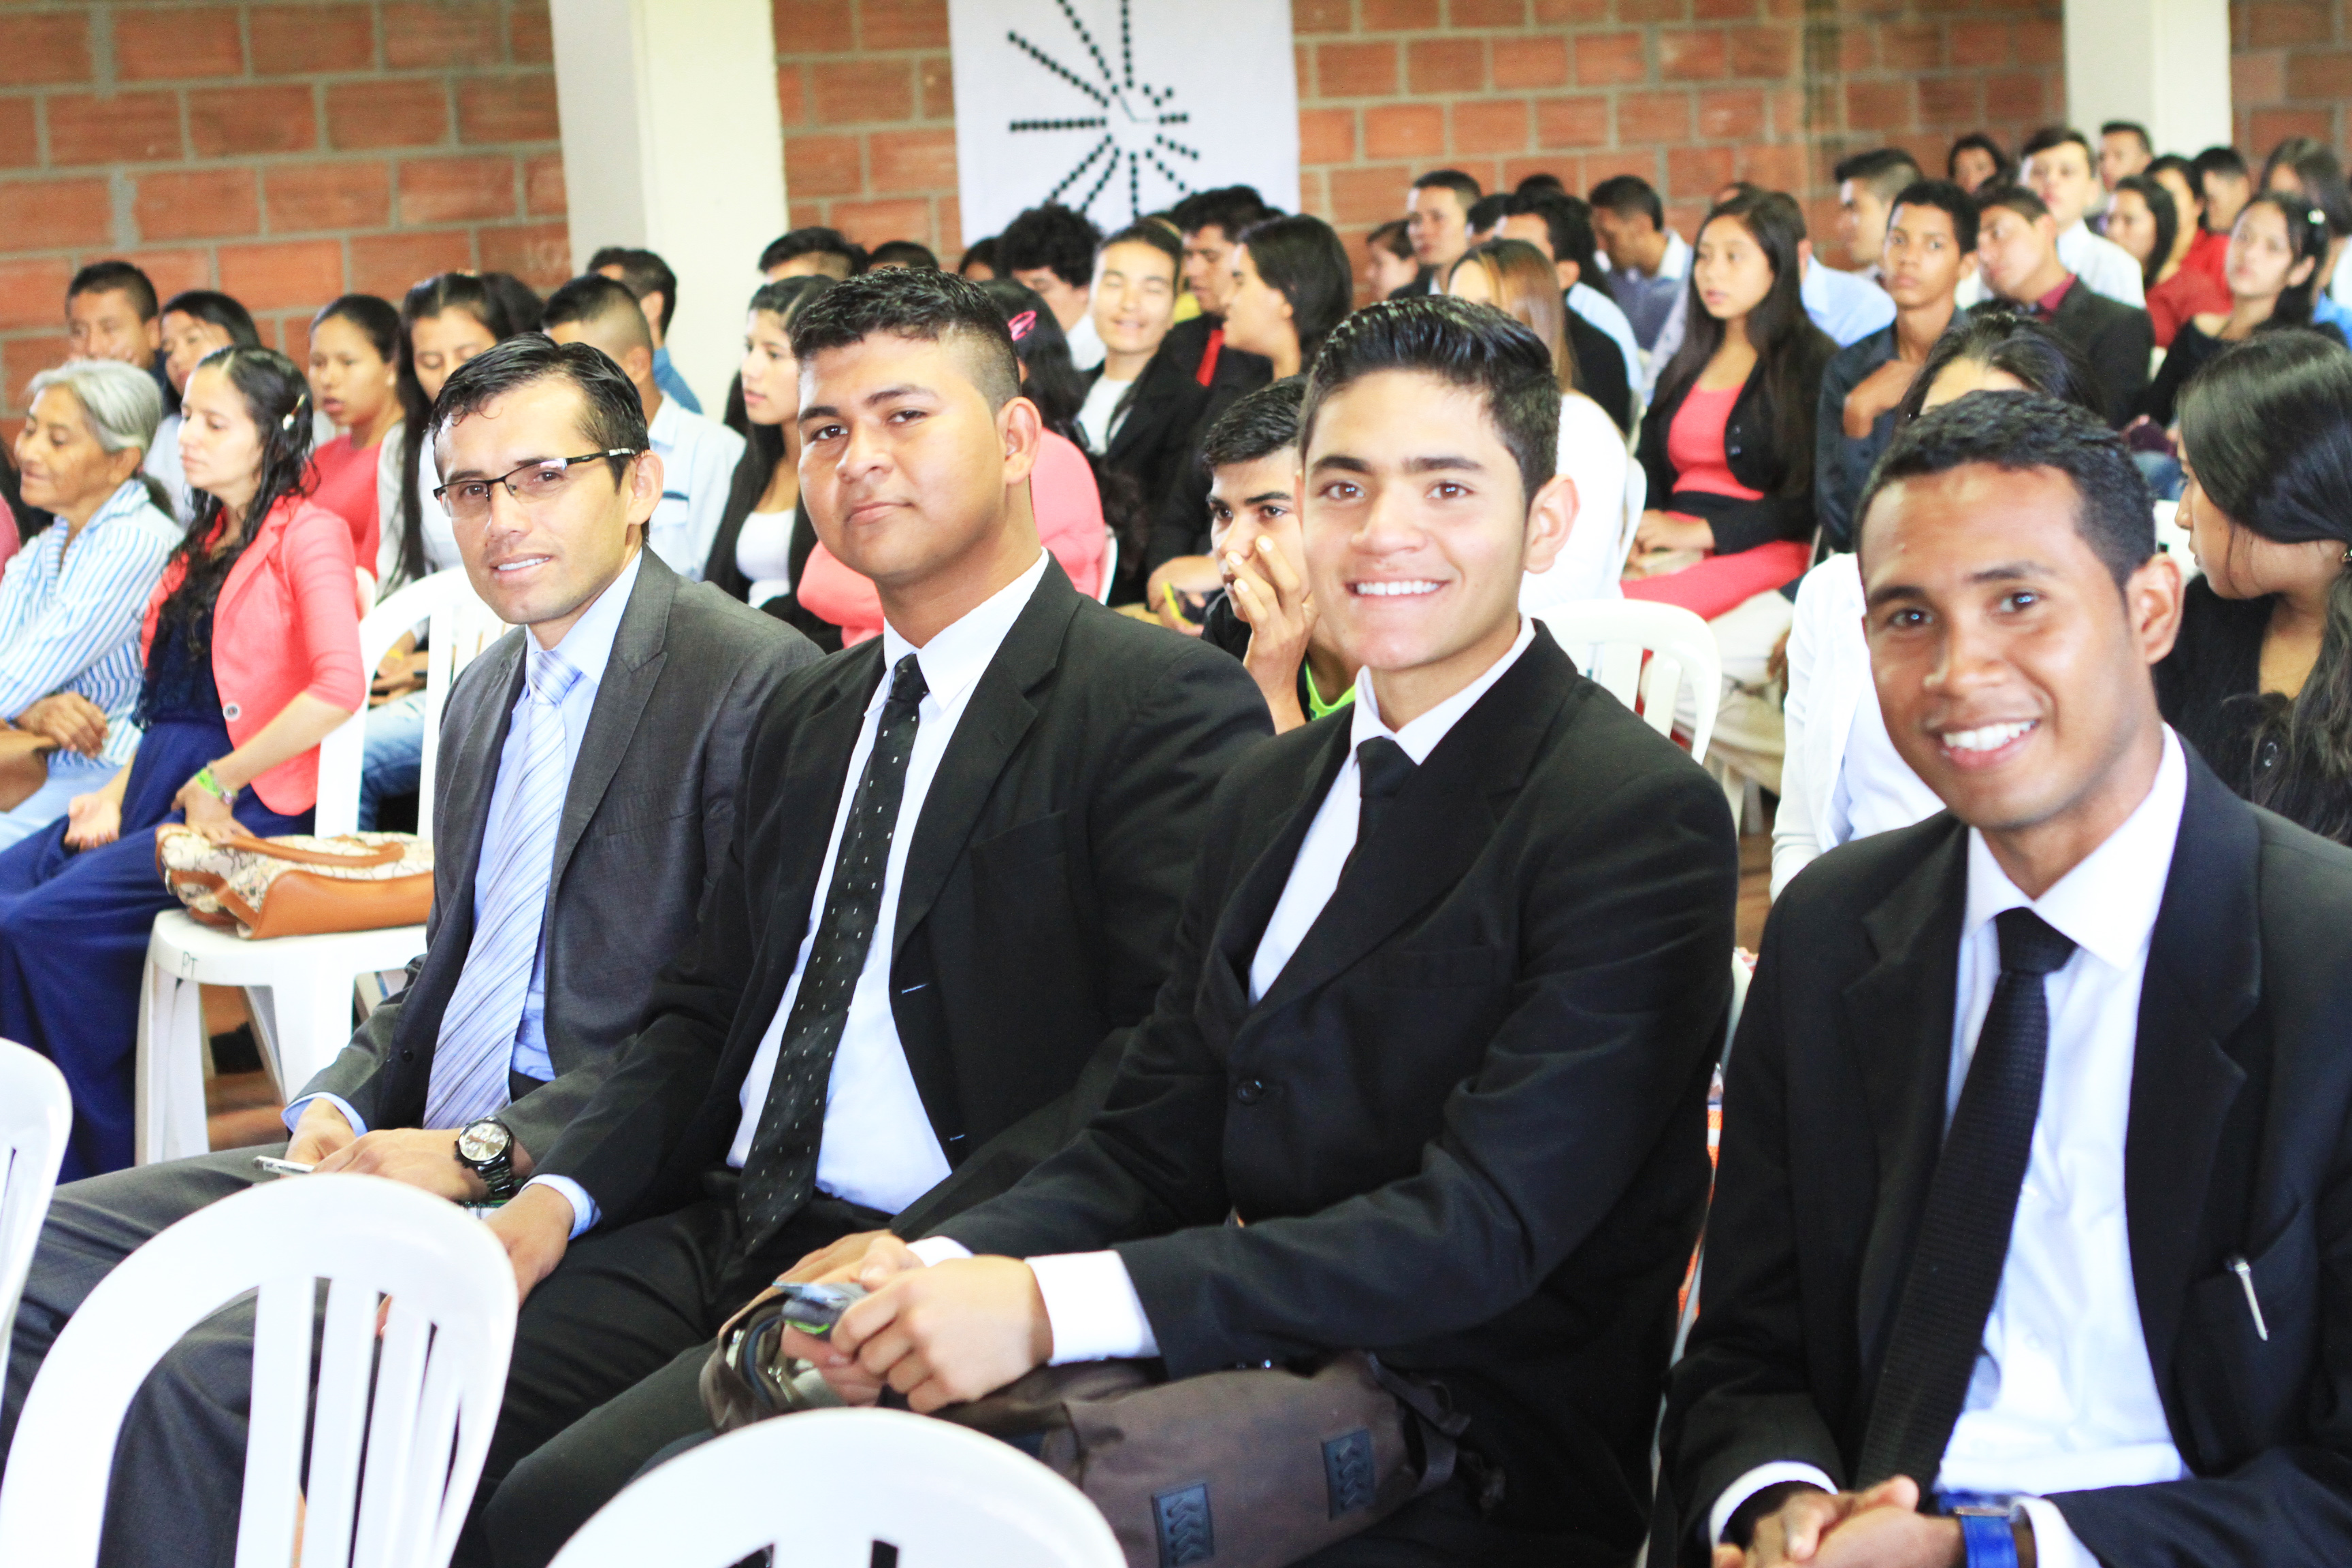 National Youth Convention - Colombia | Seventh Day Adventist